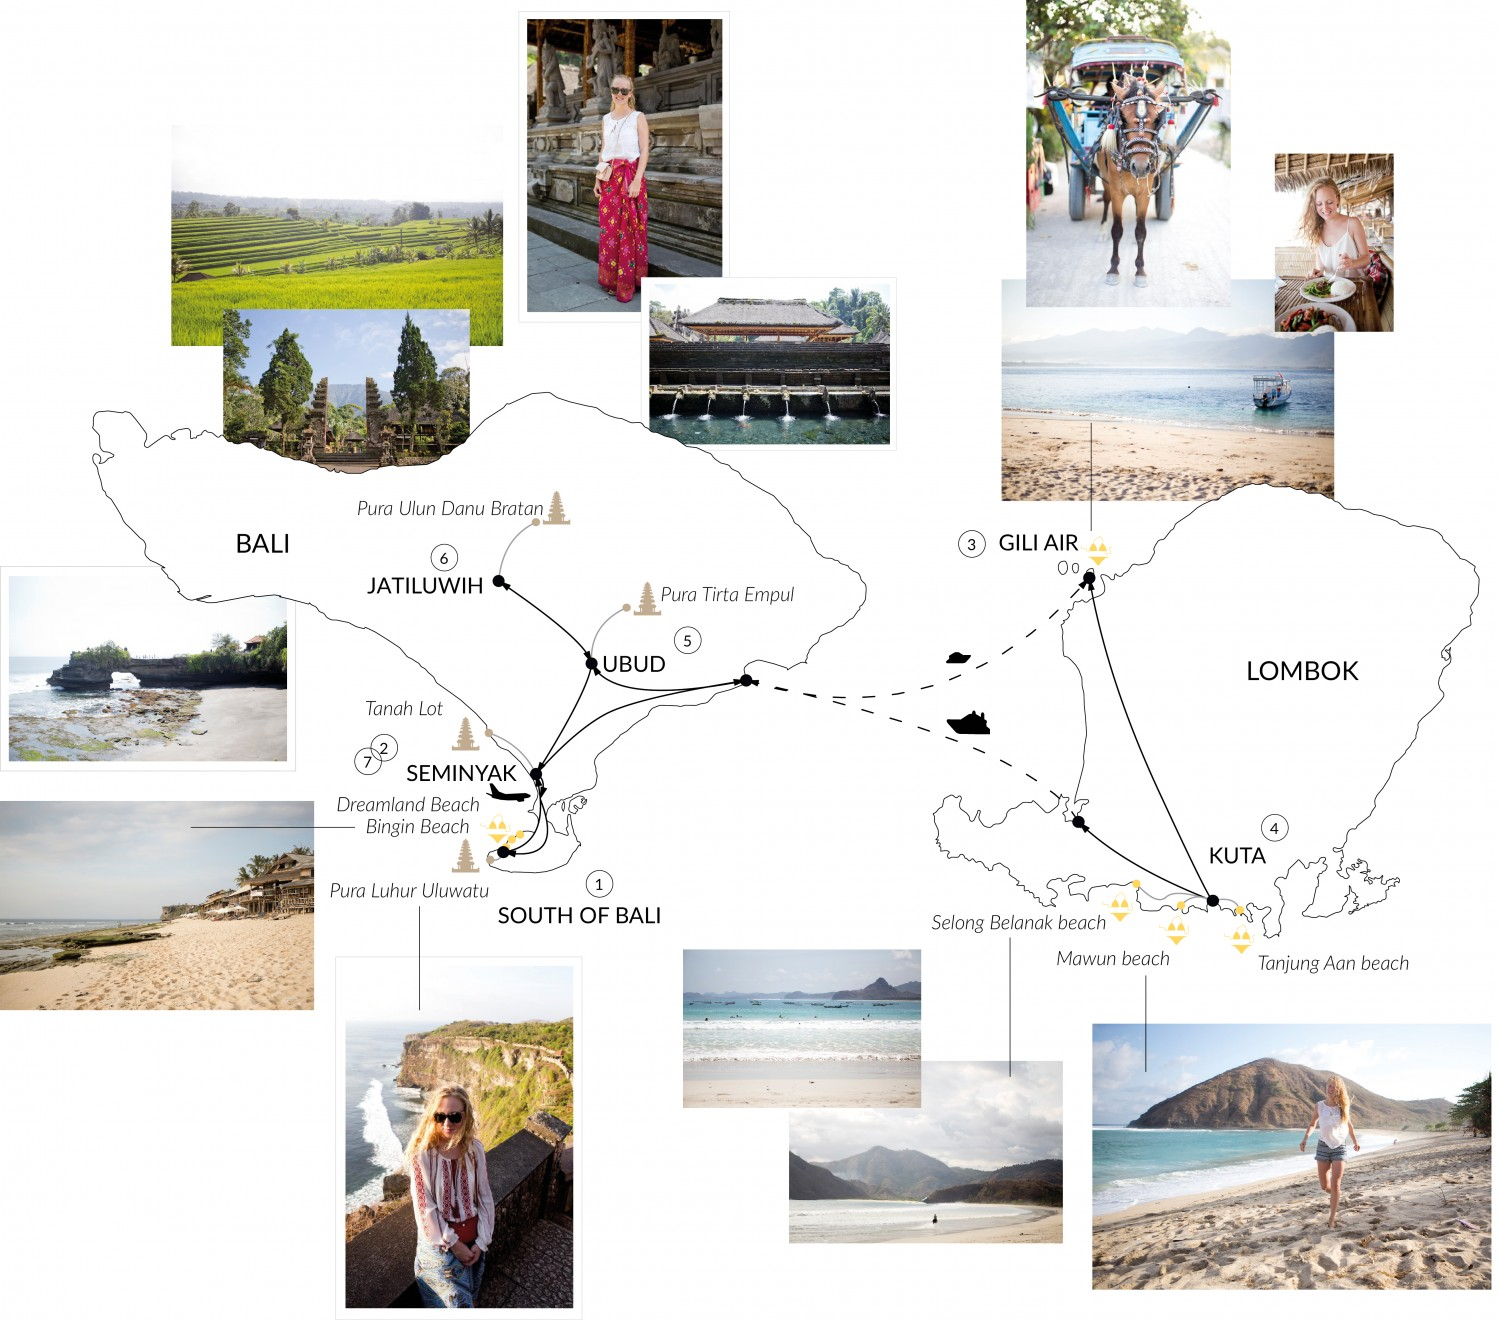 Our Bali Route (+Lombok) | what to do, restaurant and hotel tips